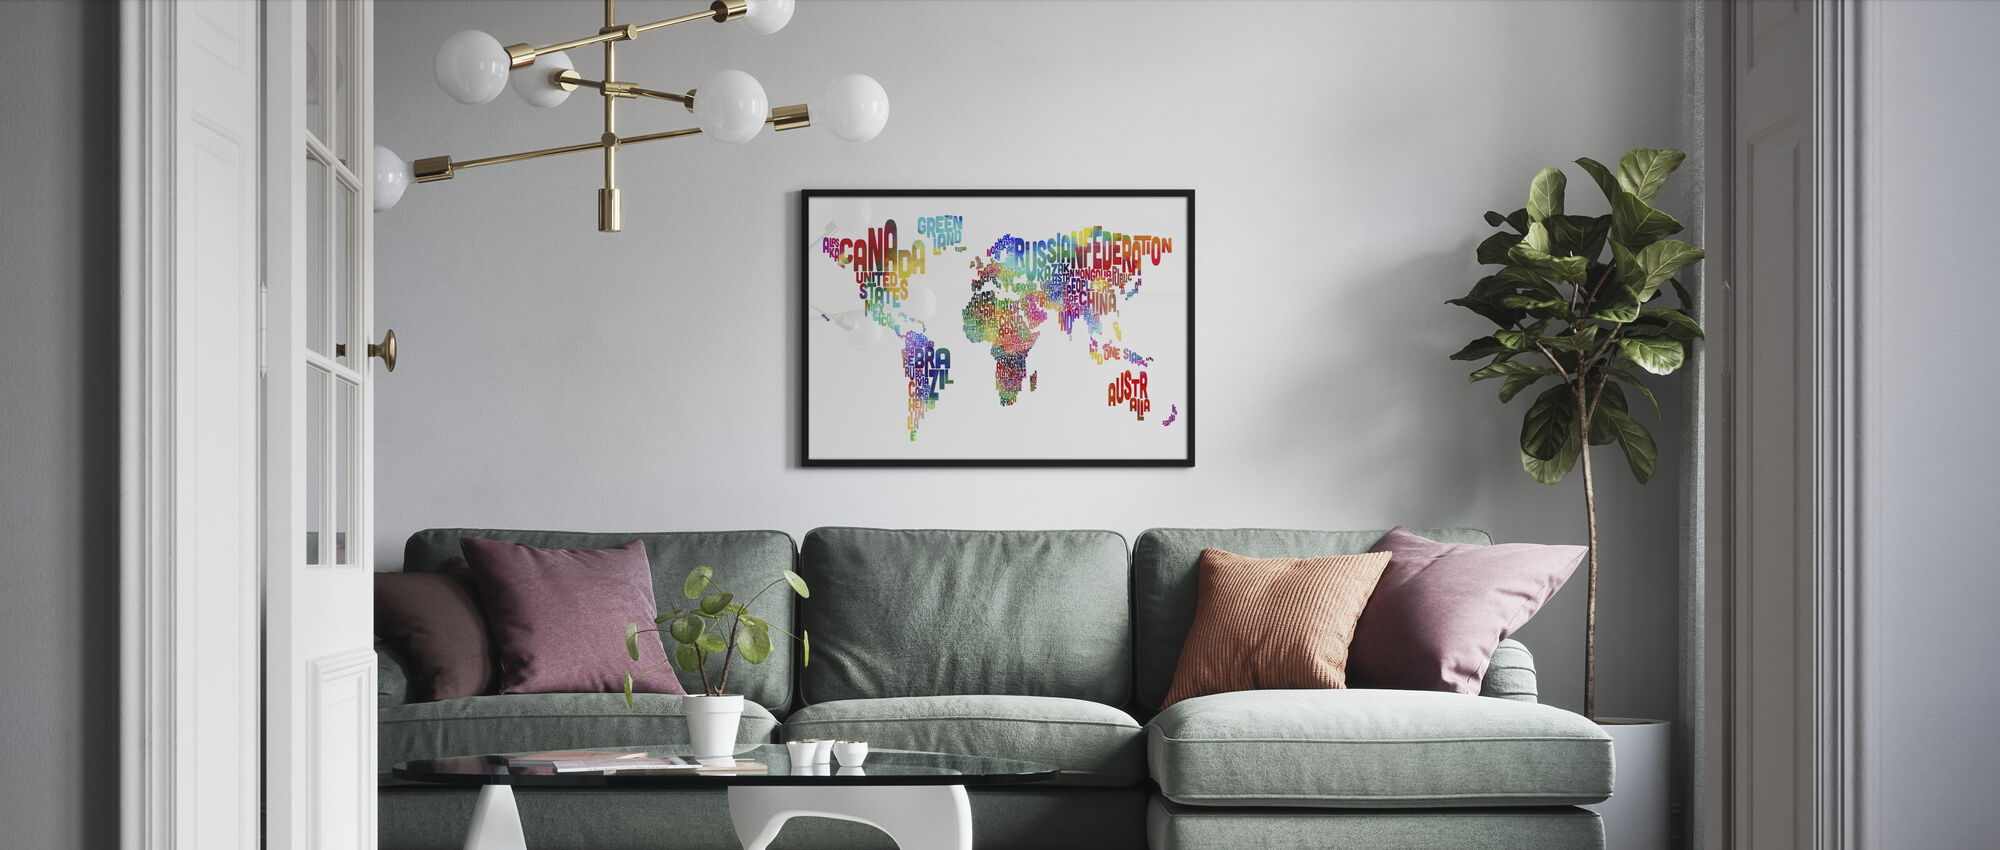 Typographic Text World Map 2 - Framed print - Living Room